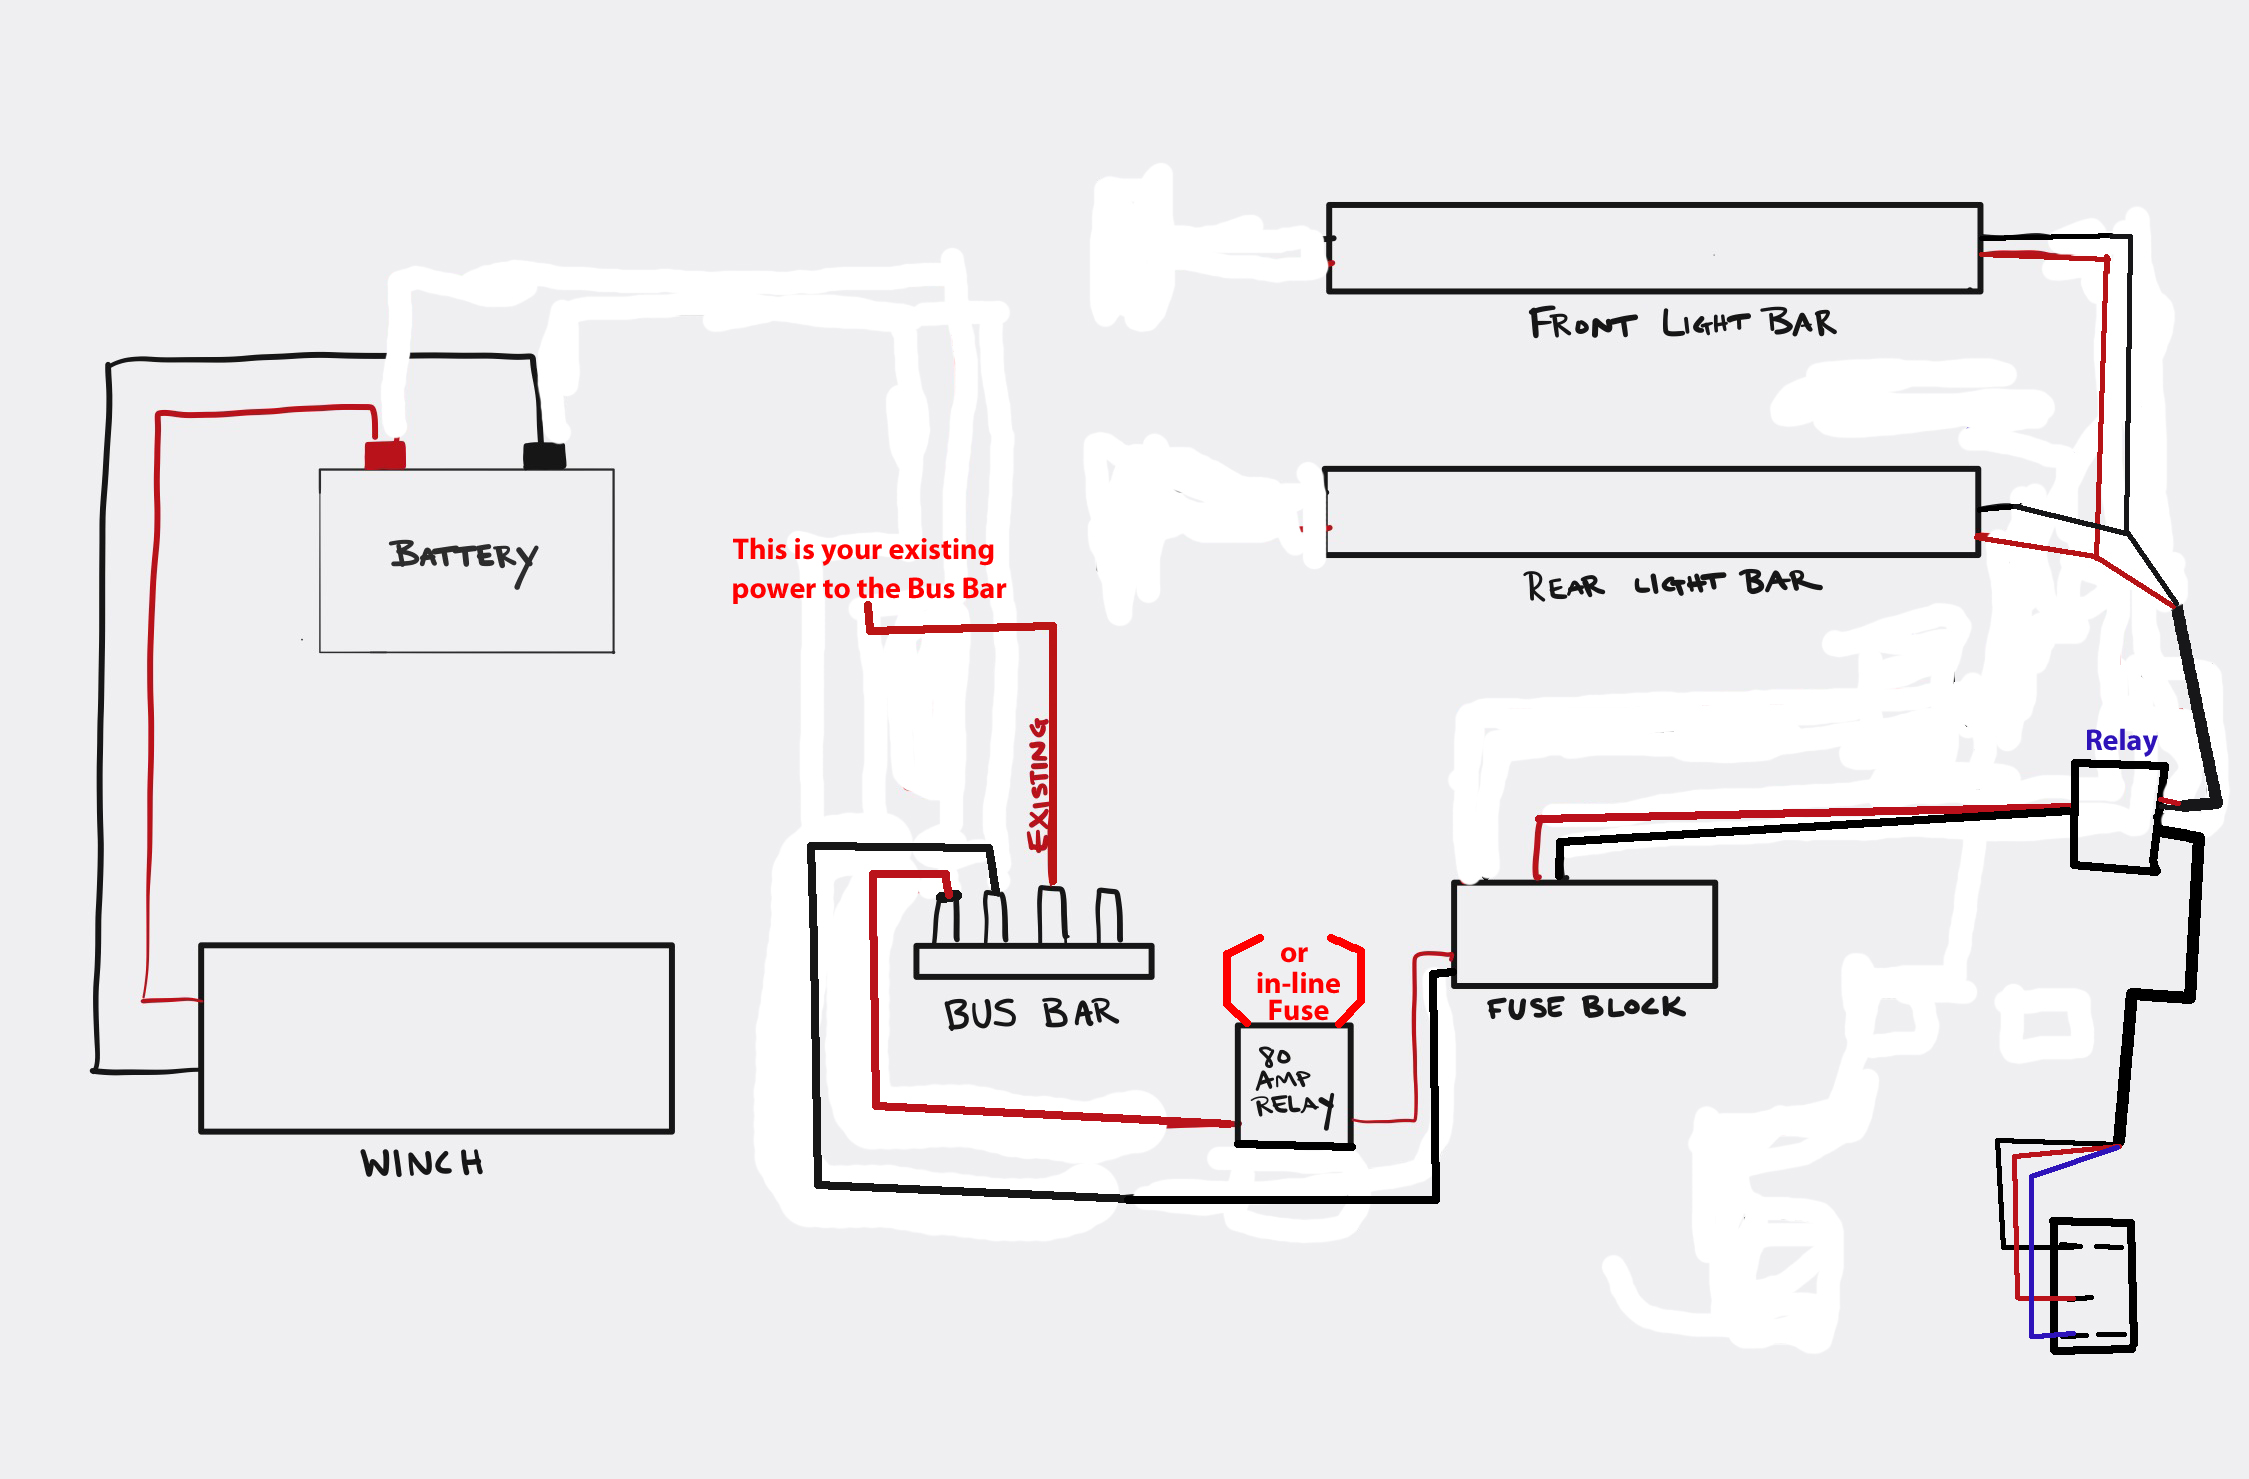 Wiring Instructions For Rigid D2 Lights